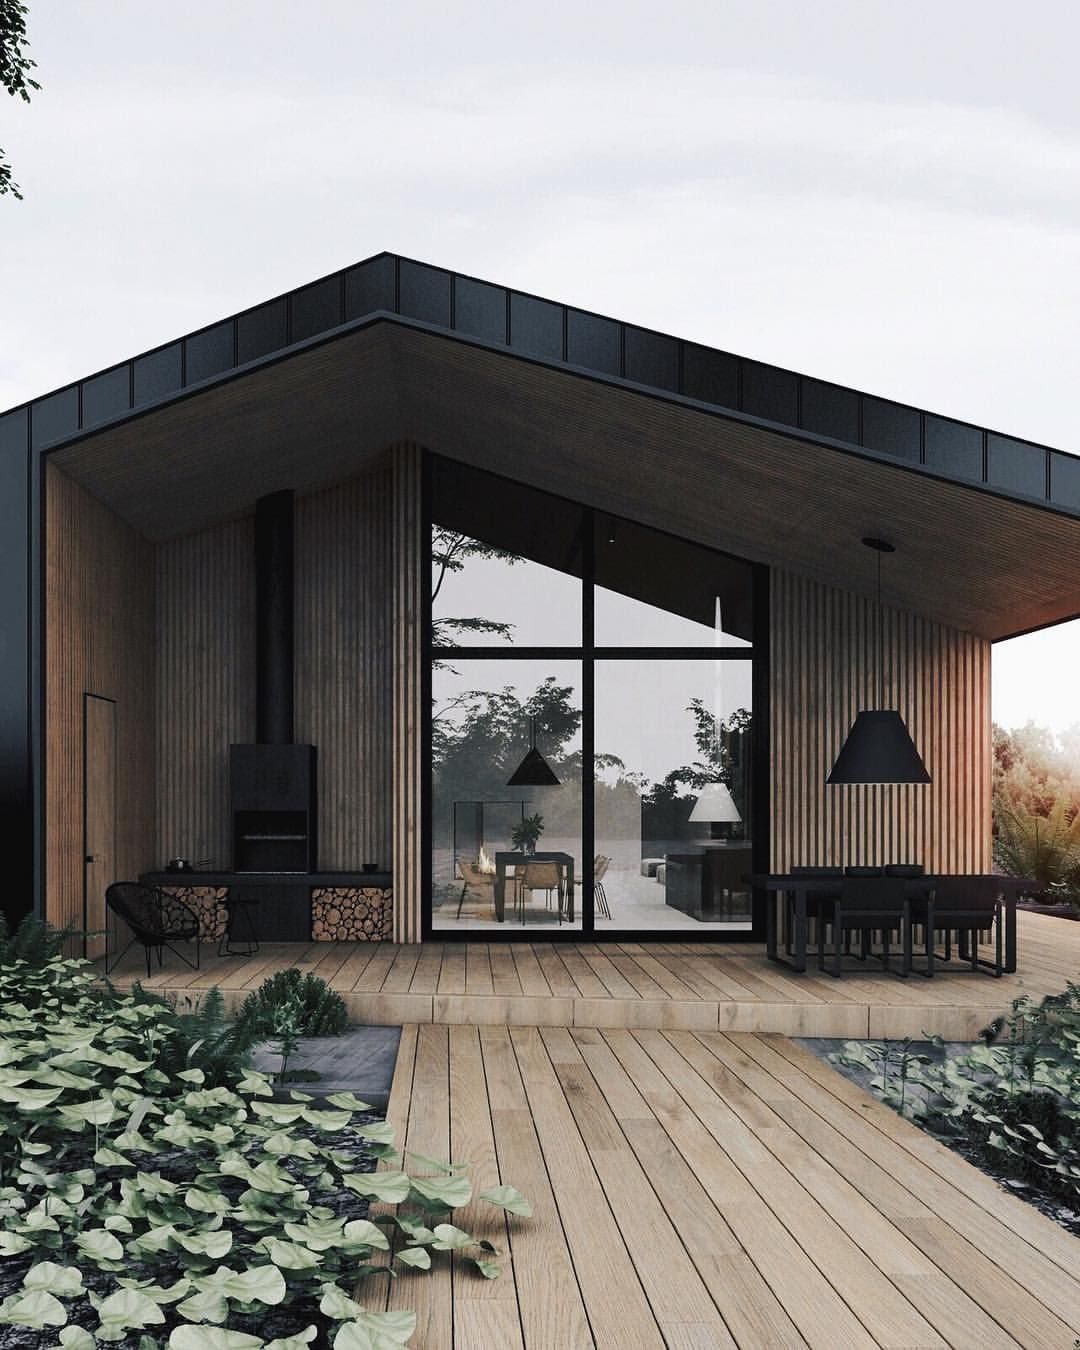 Allofarchitecture Black White House Is Designed And Visualized By Mariya Chmut And Home Design Kiev This Amazing Design Is A Dom Arhitektura Dizajn Doma